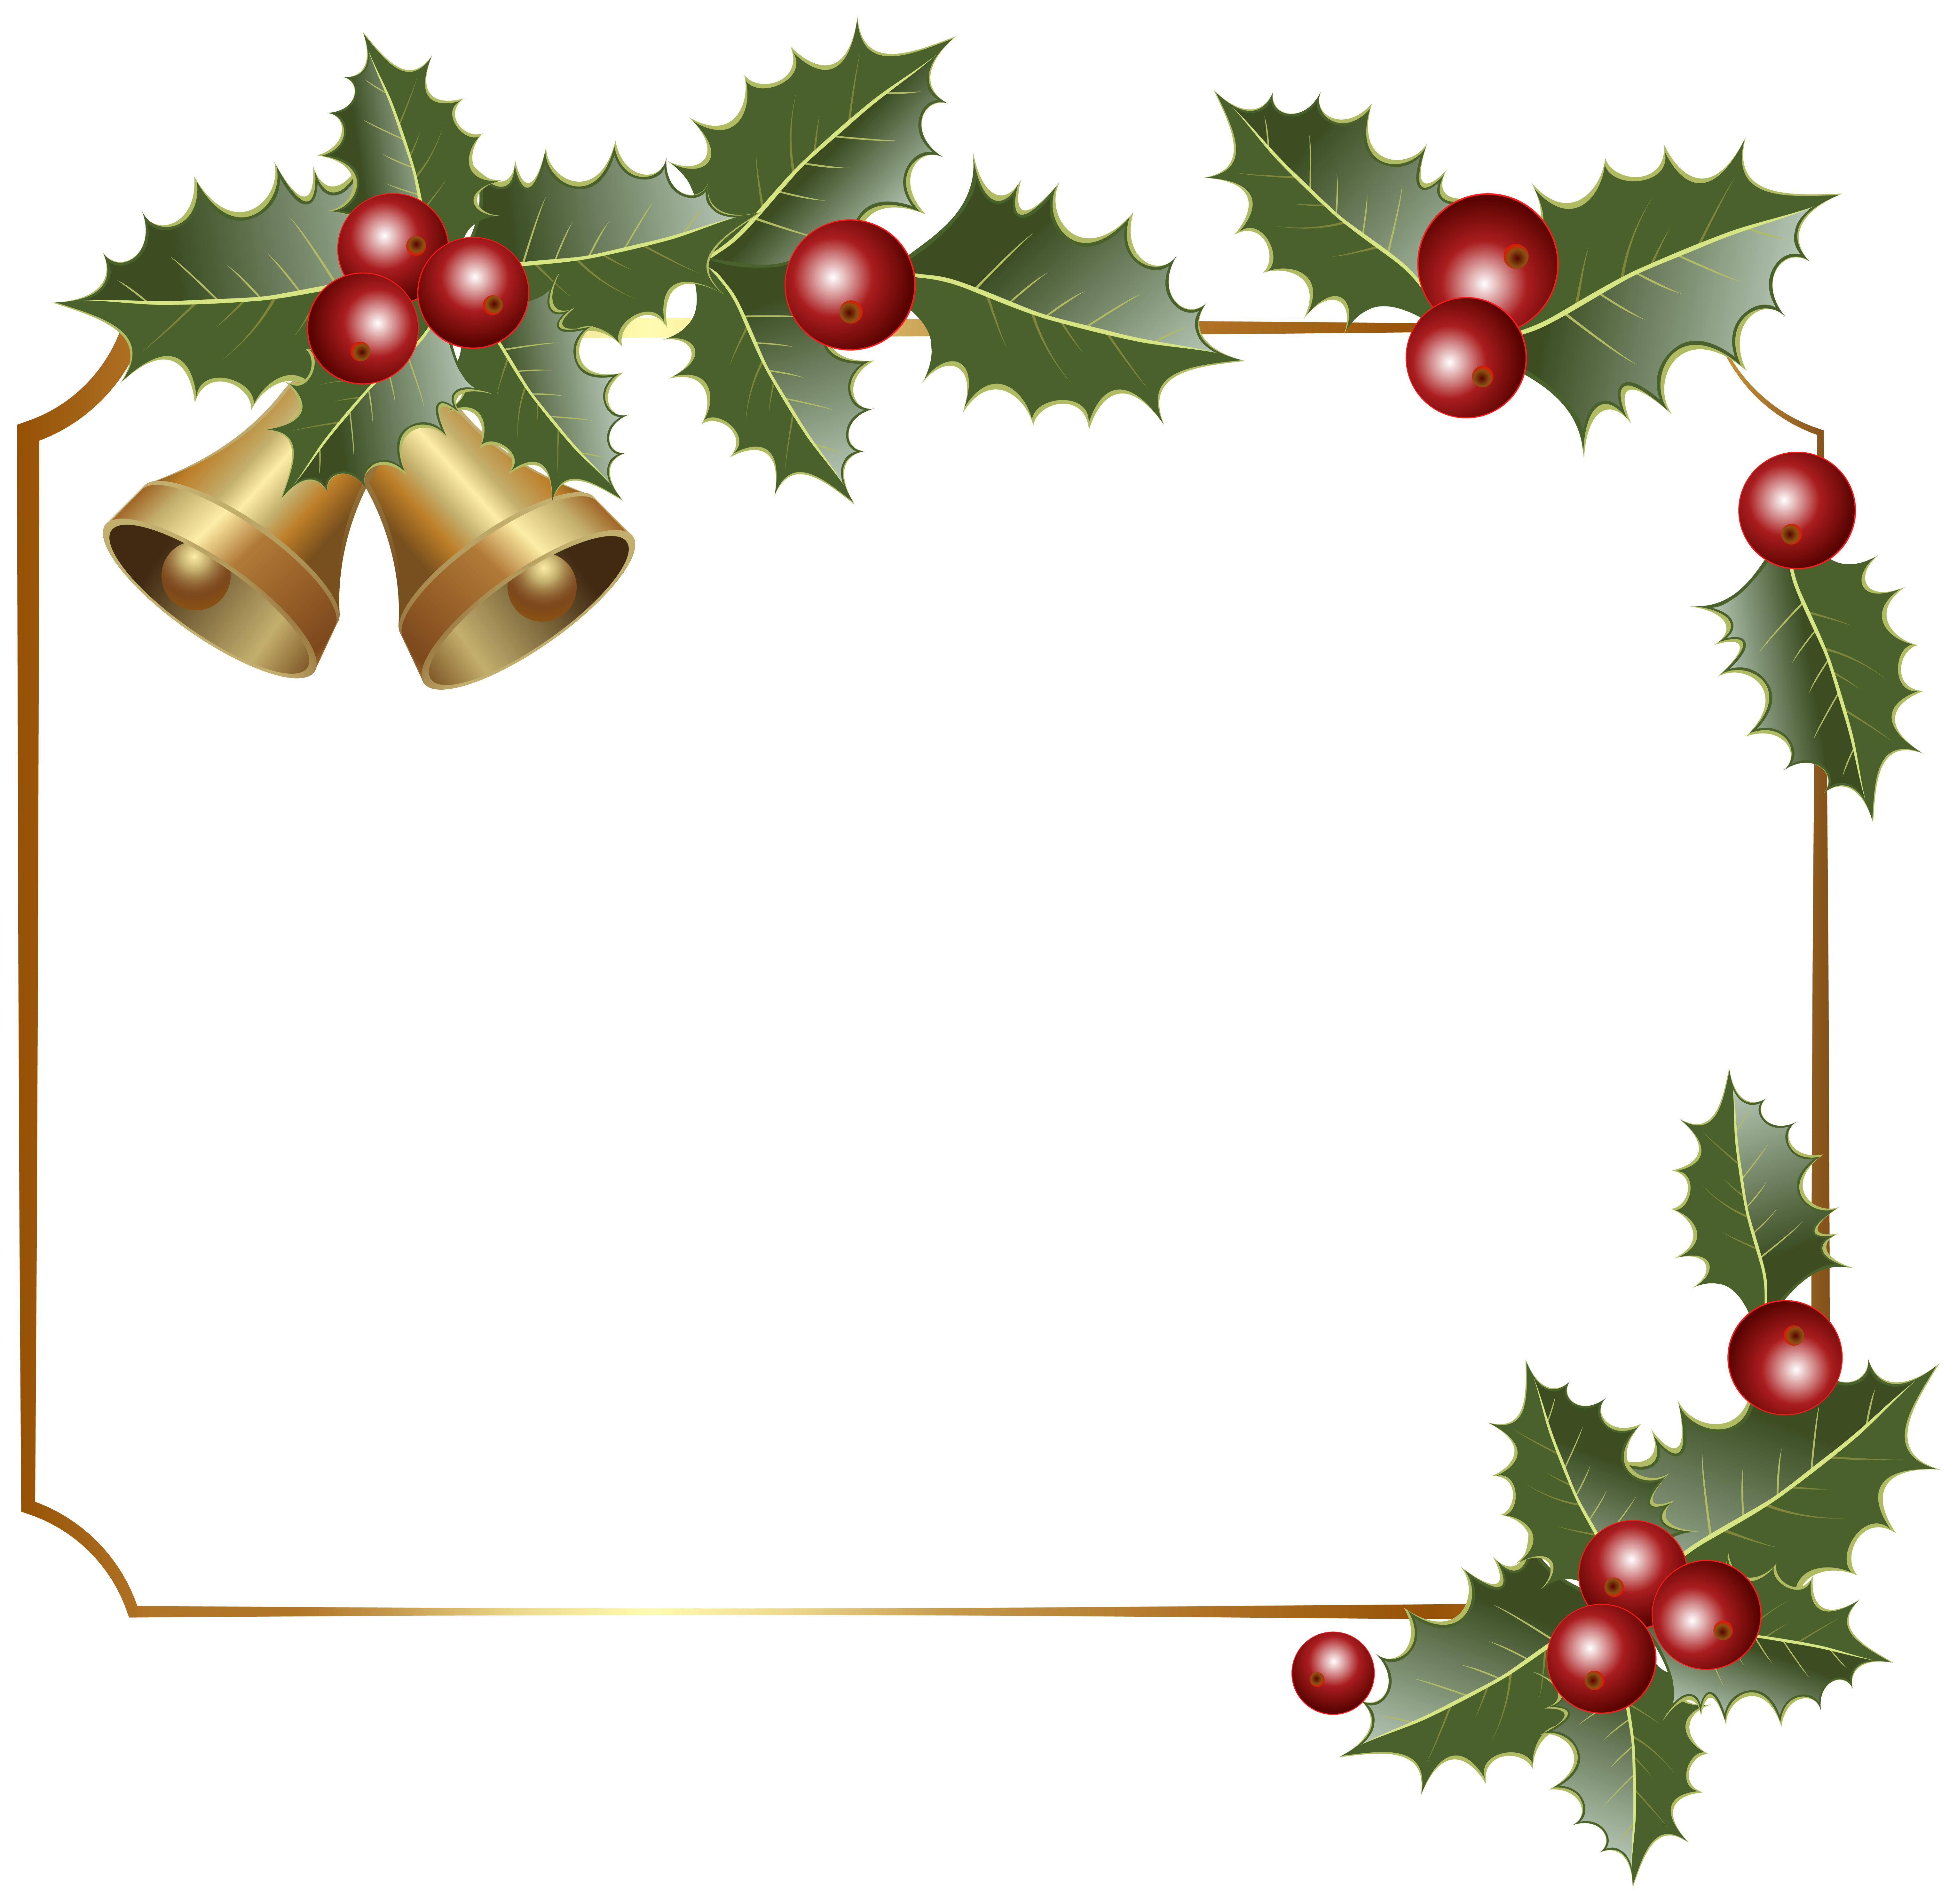 banner free download Decorations crazywidow info. Christmas clipart borders